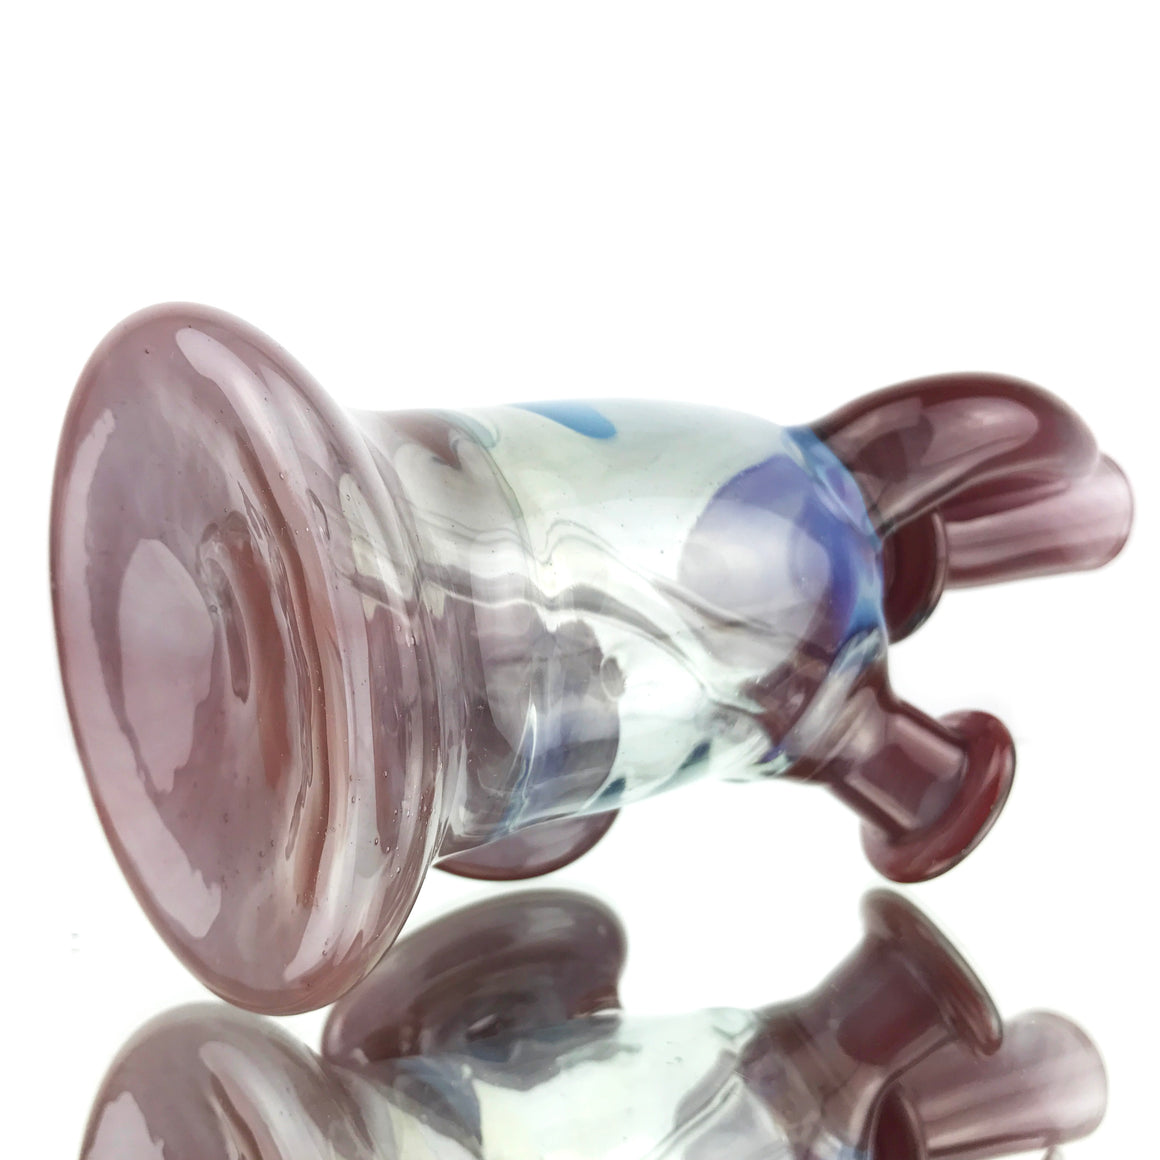 Fully Worked Shield Rig - Wine Red/Sliver Fume Blue - 14mm Female